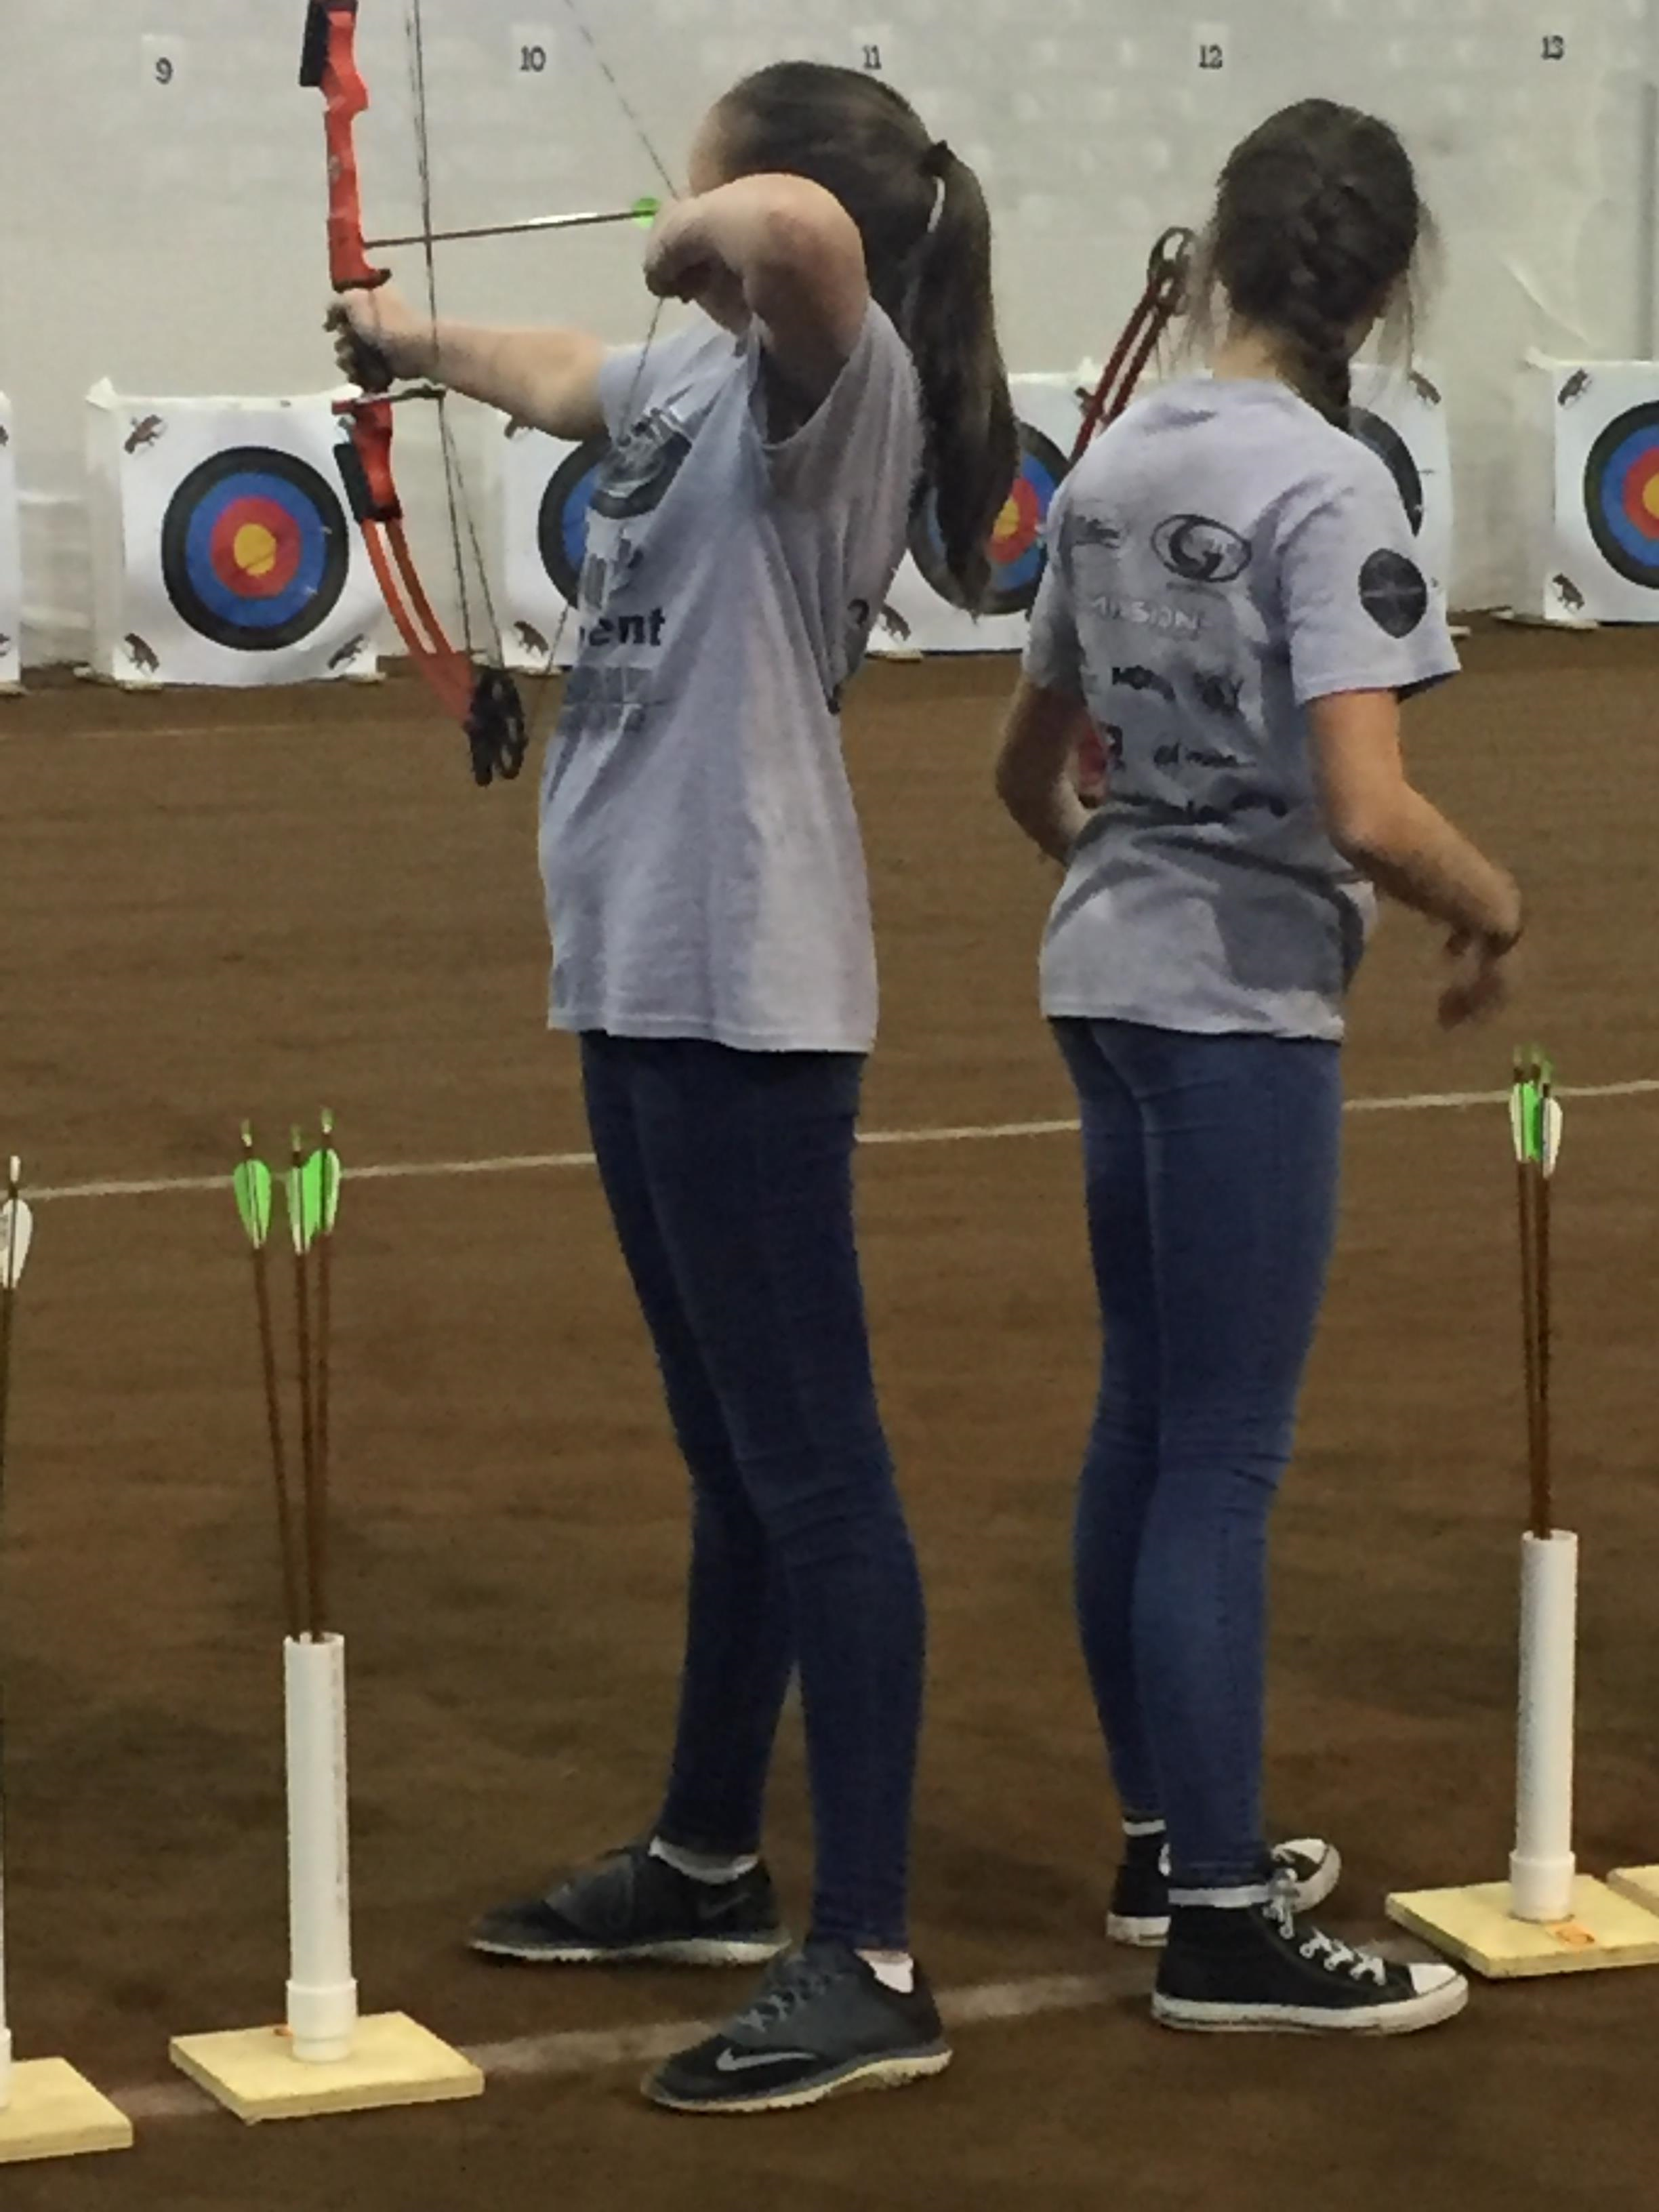 Archery Team Competition